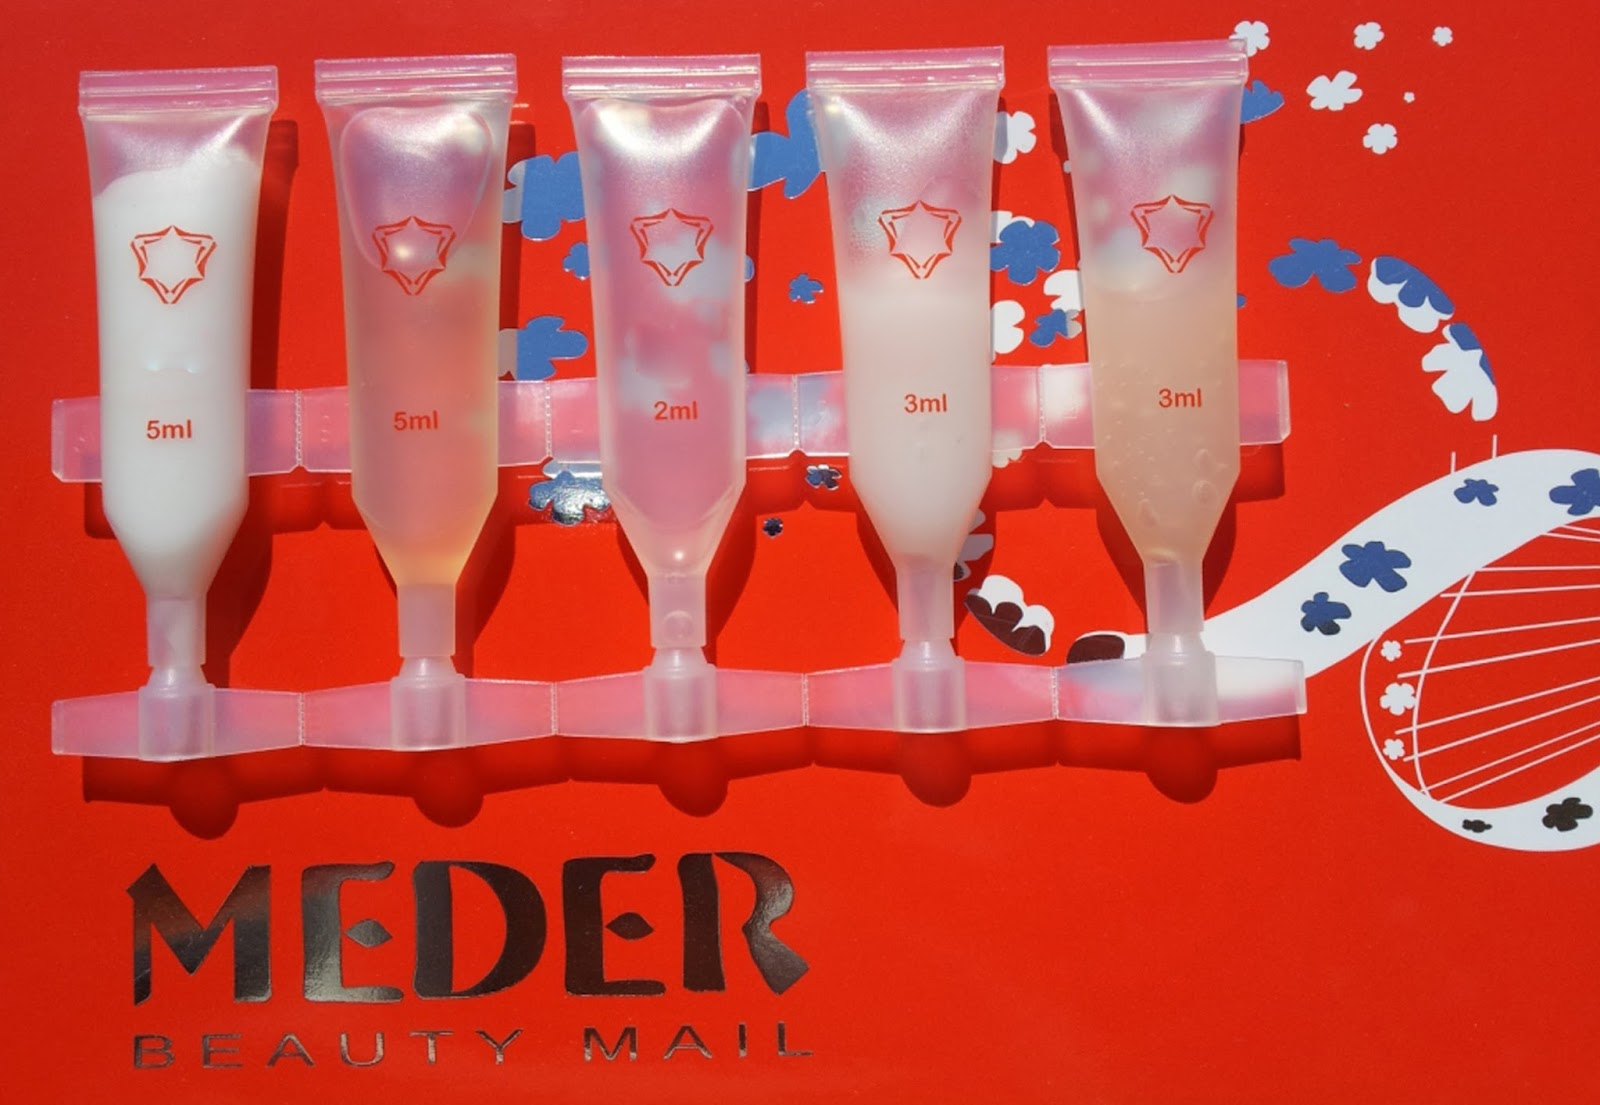 Giveaway by Meder Beauty Science